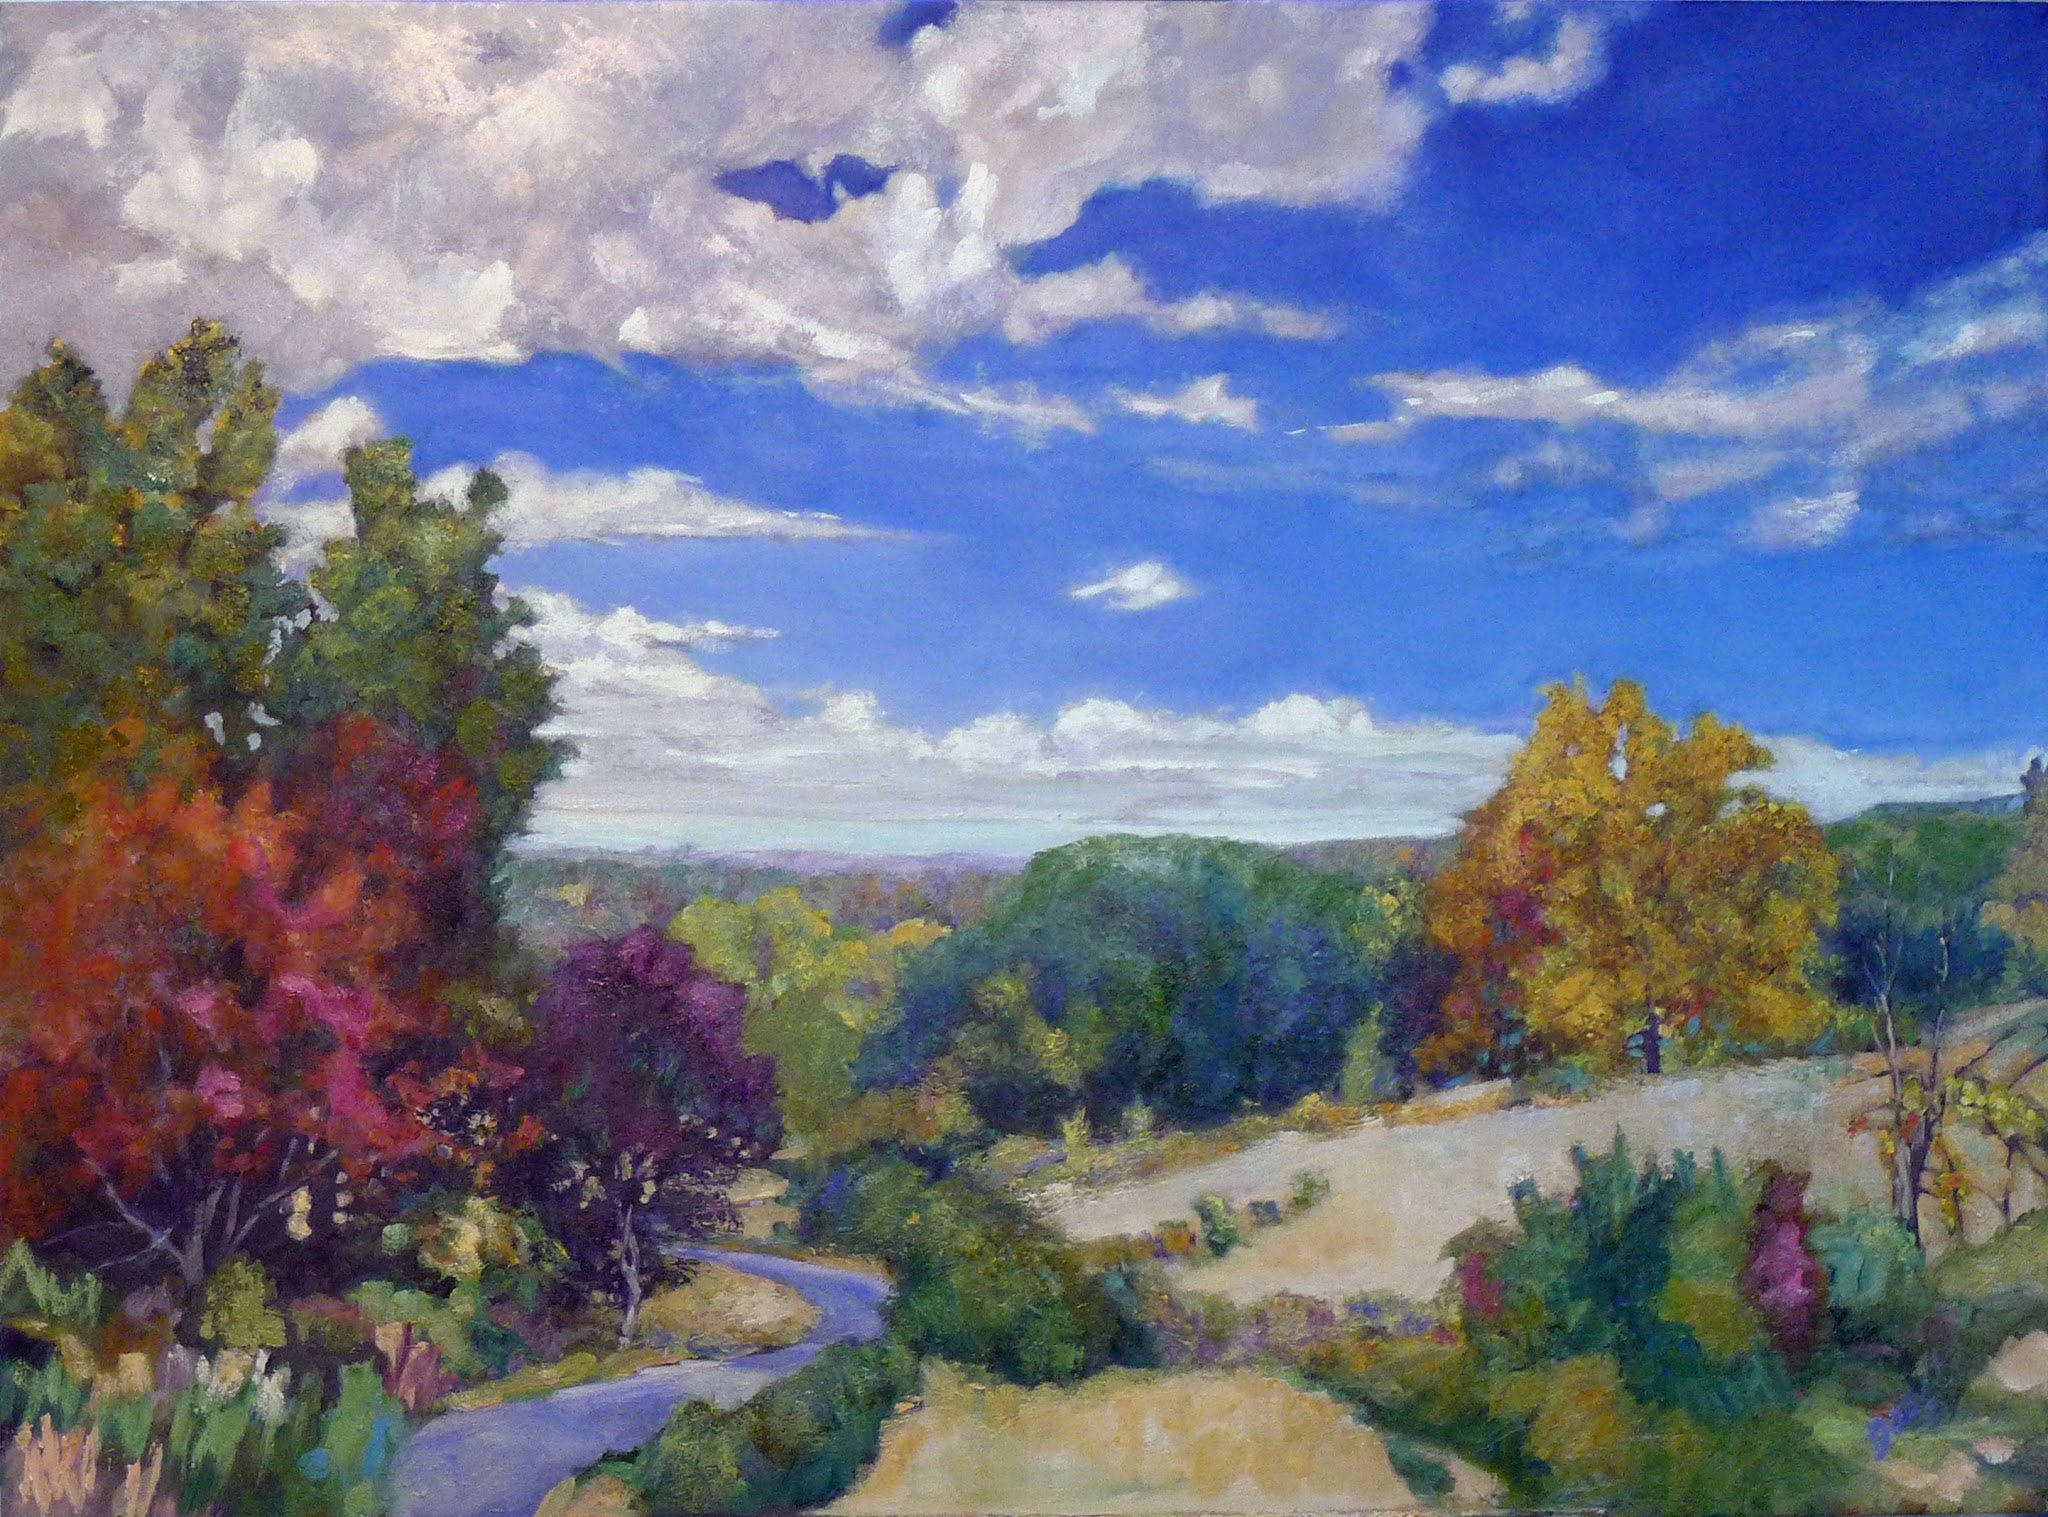 Photo: Summer afternoon reverie—48X36, oil on canvas, private collection.